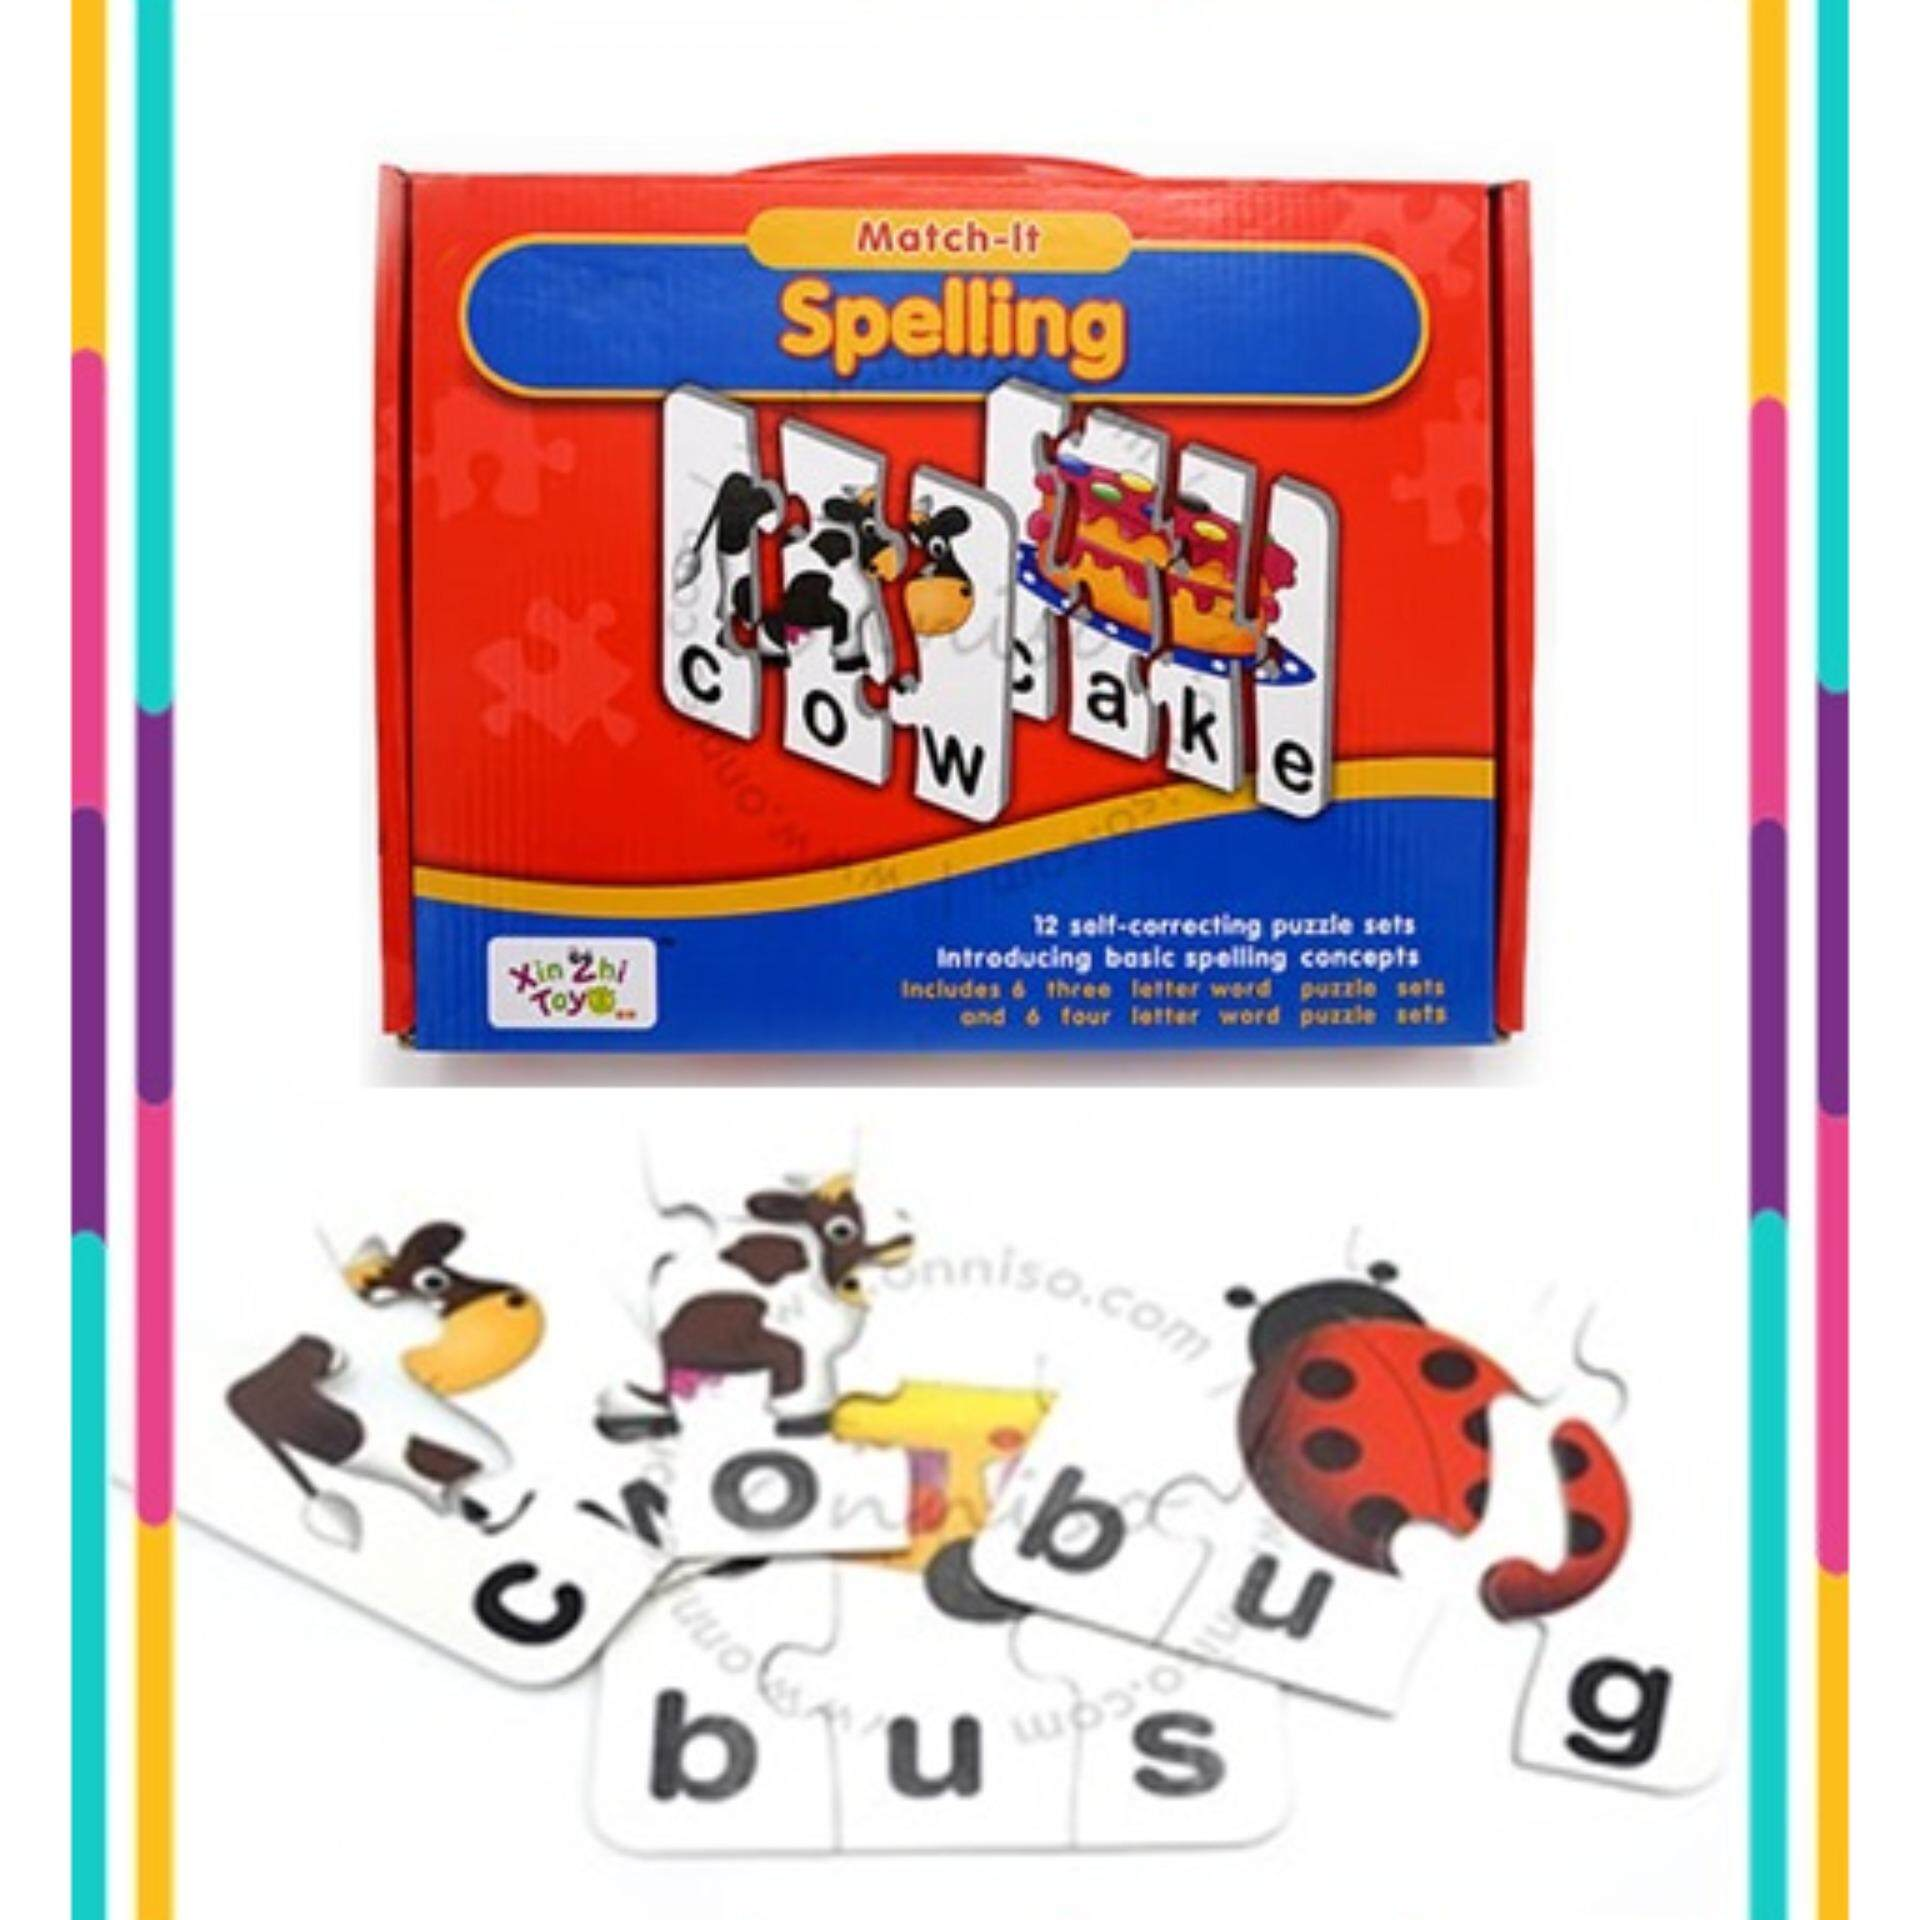 Educational Matching Jigsaws To Learn Spelling And Vocabulary